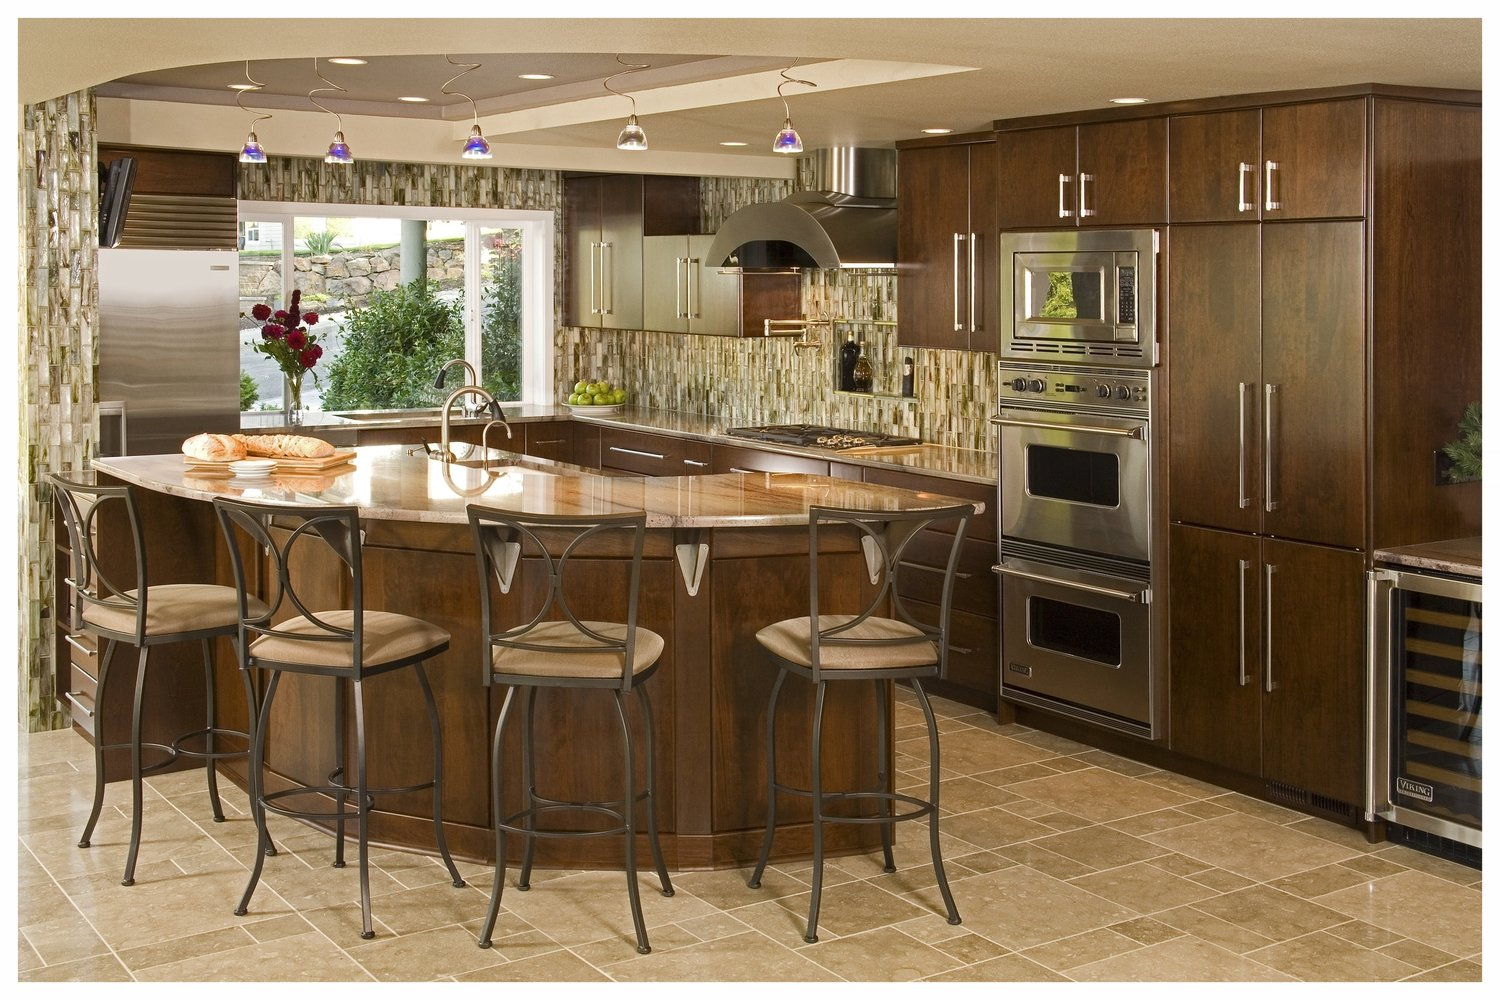 Kirkland Contemporary Kitchen 1 Jpg